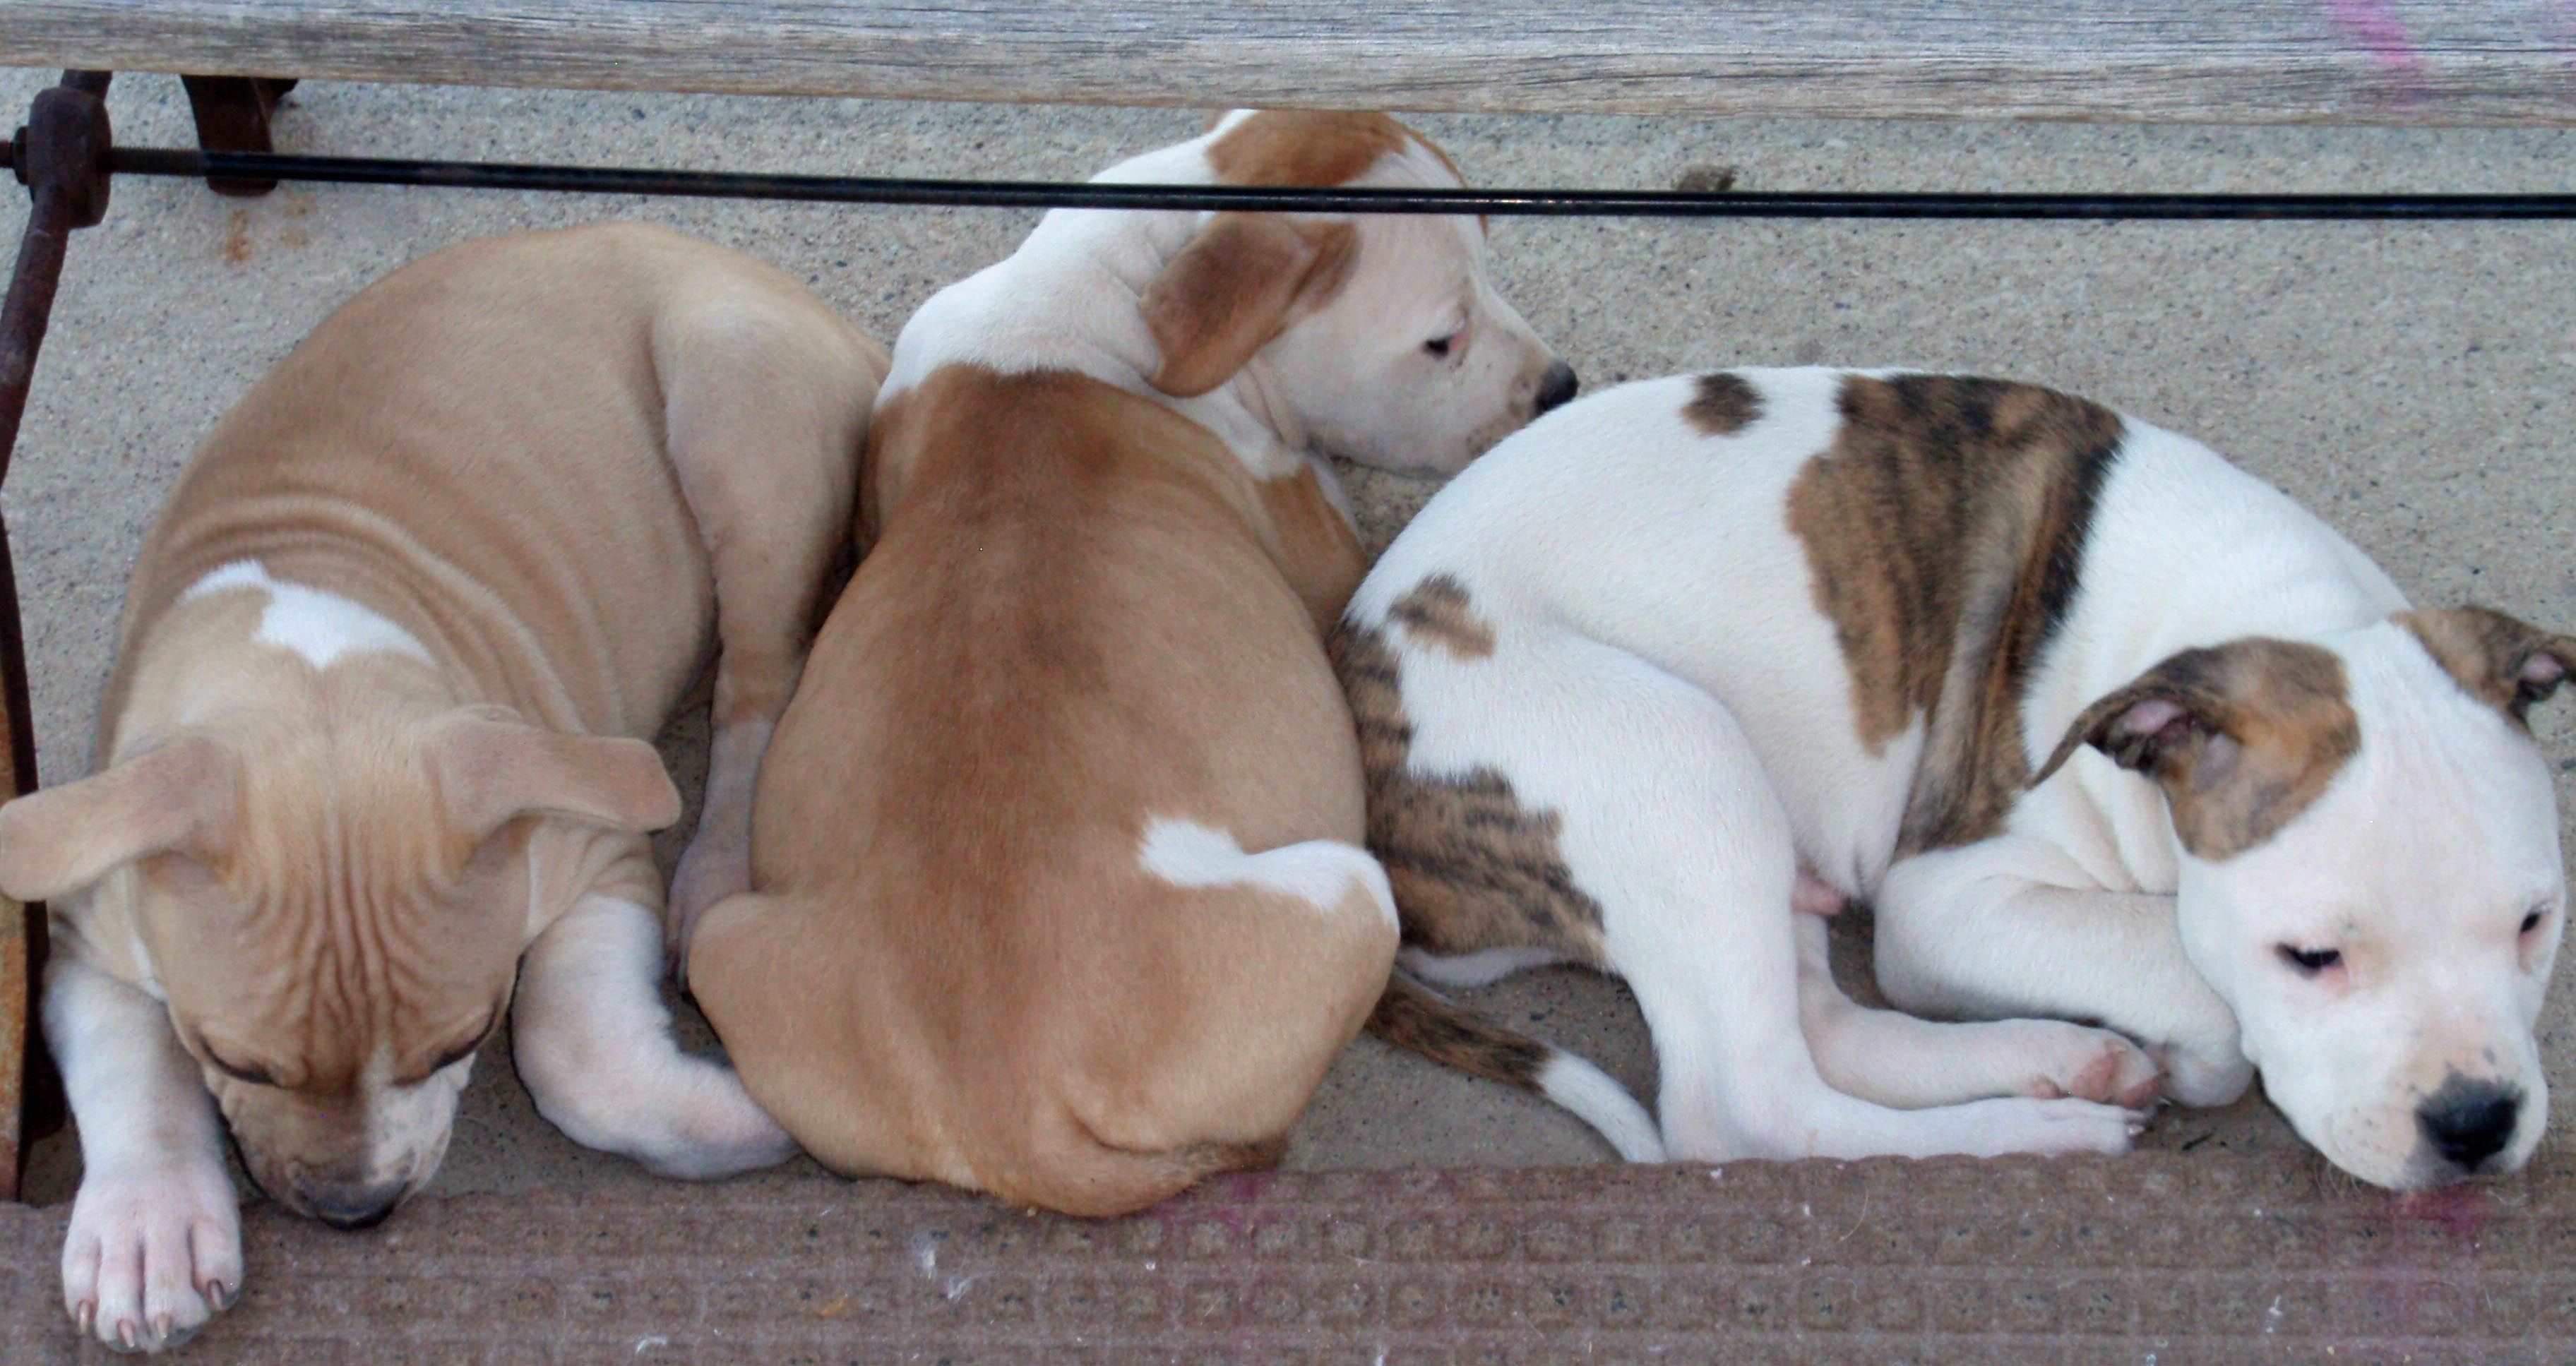 Four of Sunny's seven puppies; all are up for adoption at Utah Animal Adoption Center.